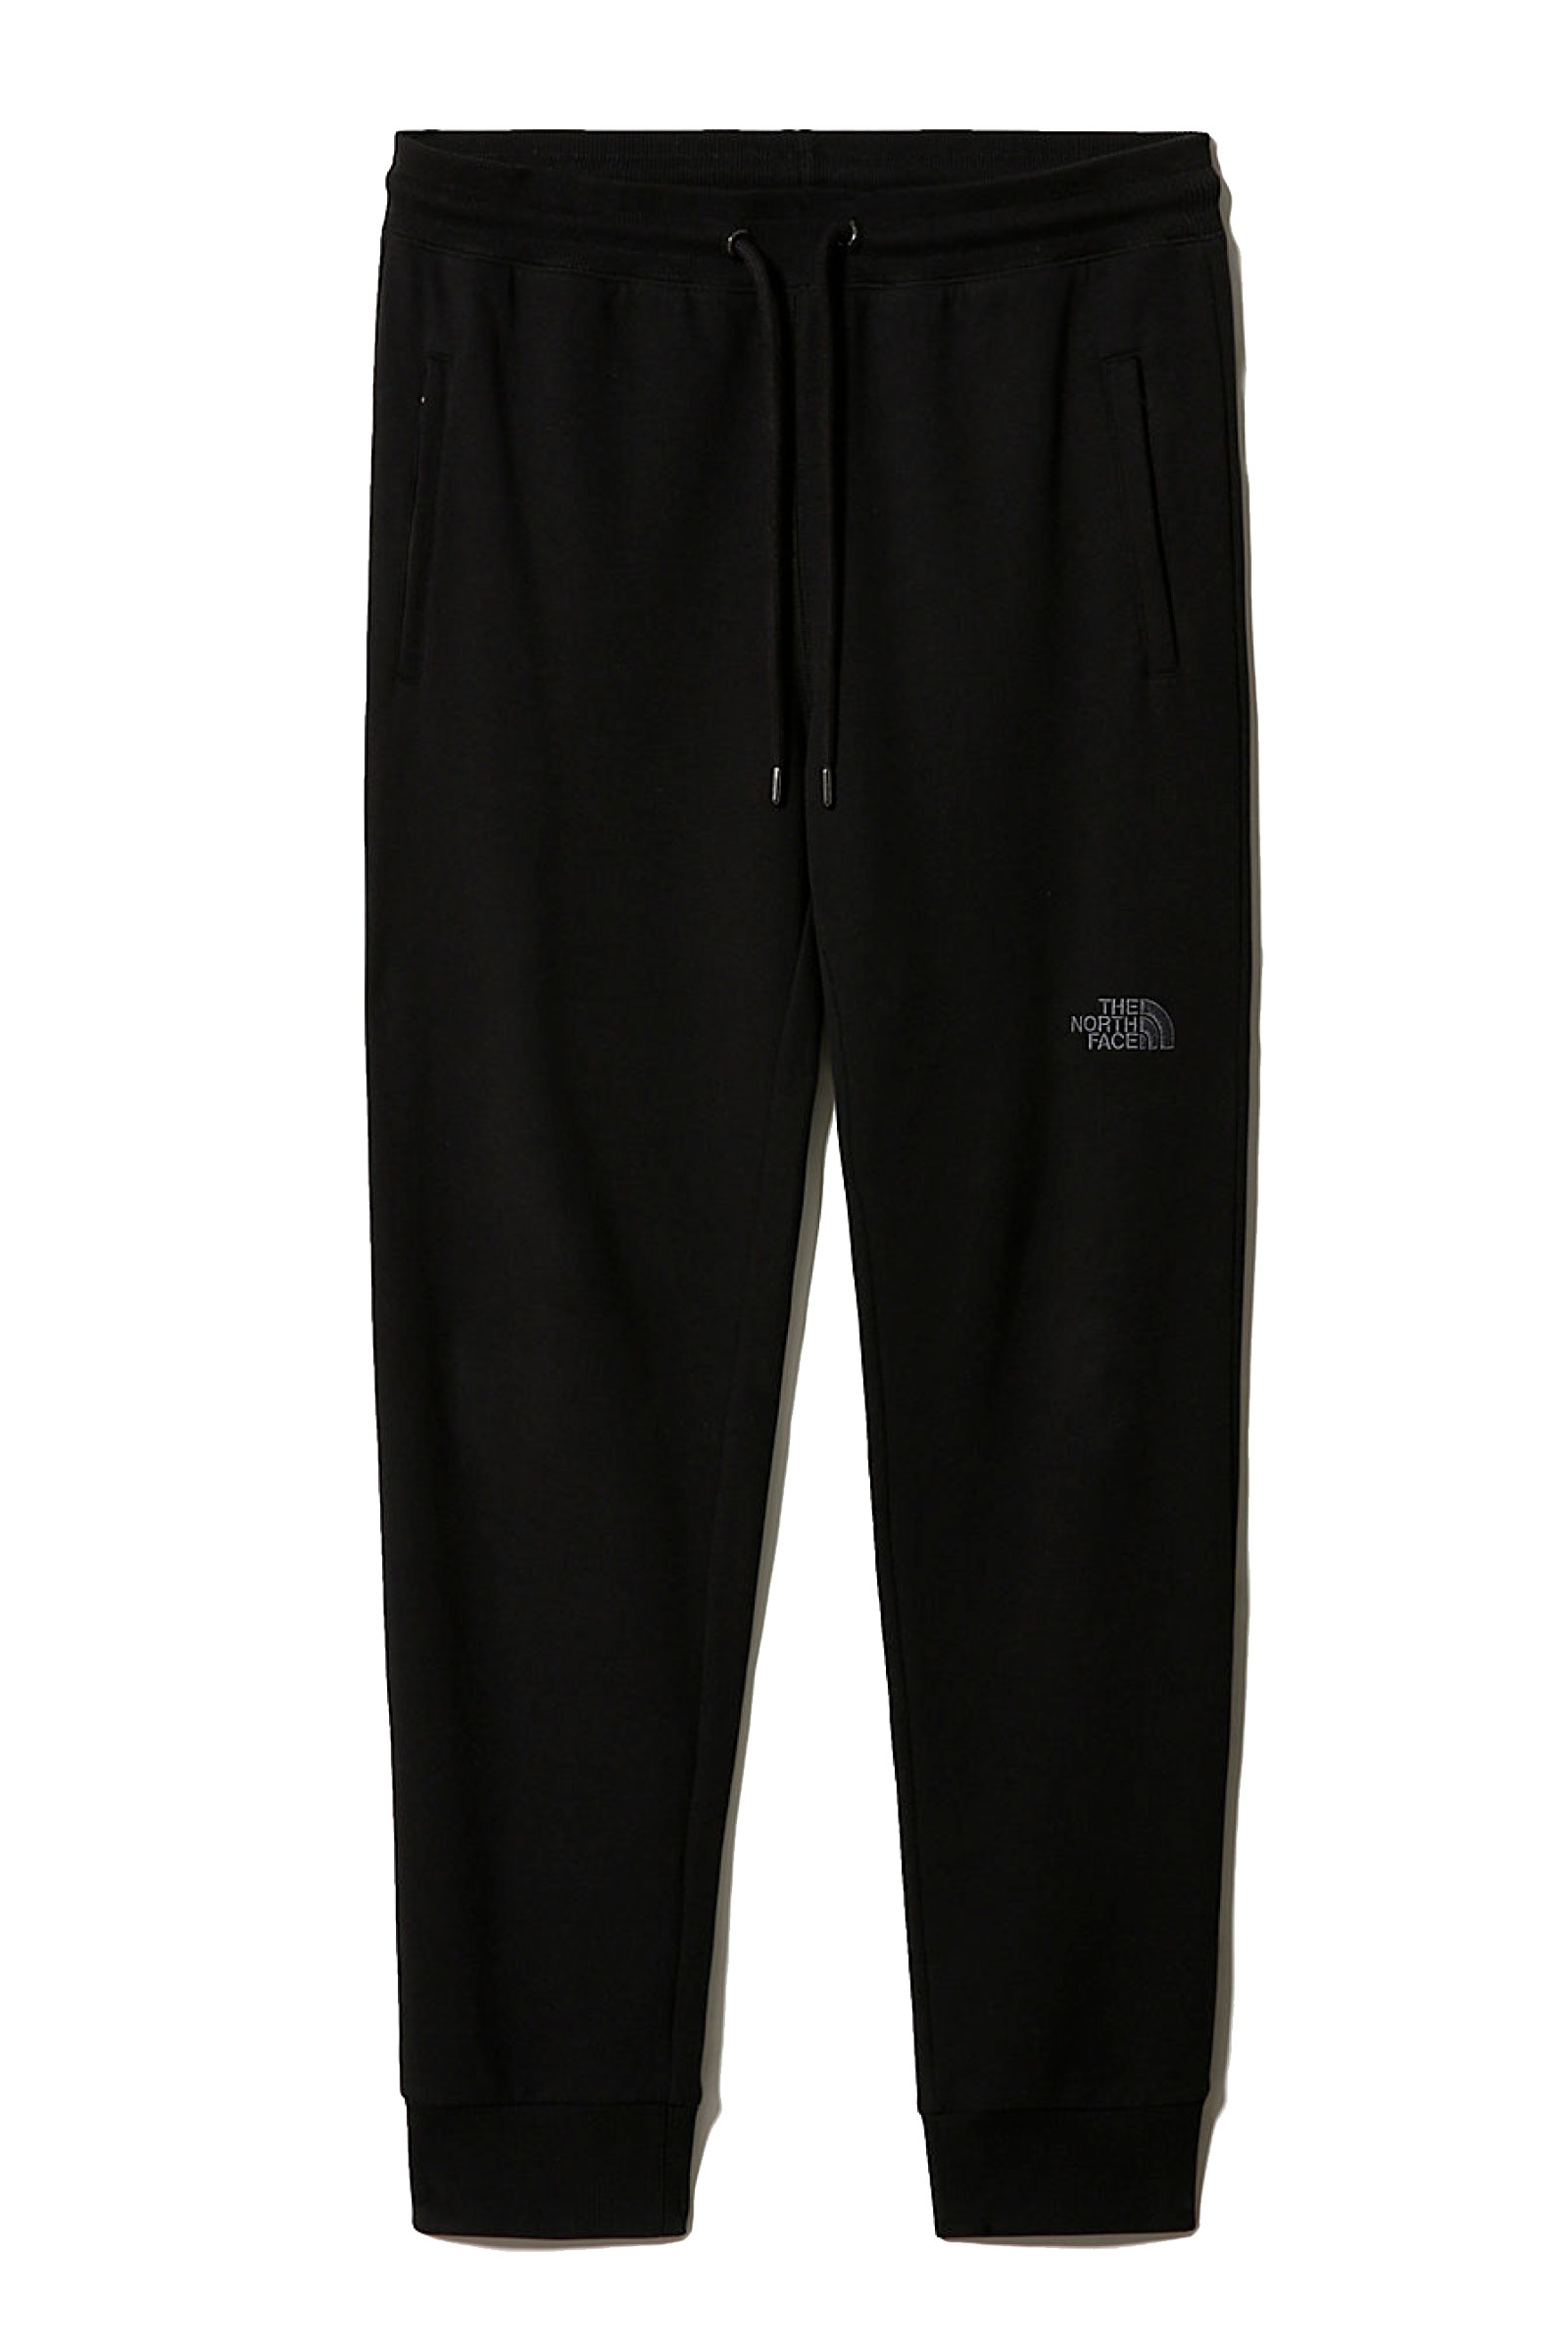 THE NORTH FACE   Trousers   NF0A4T1FJK31